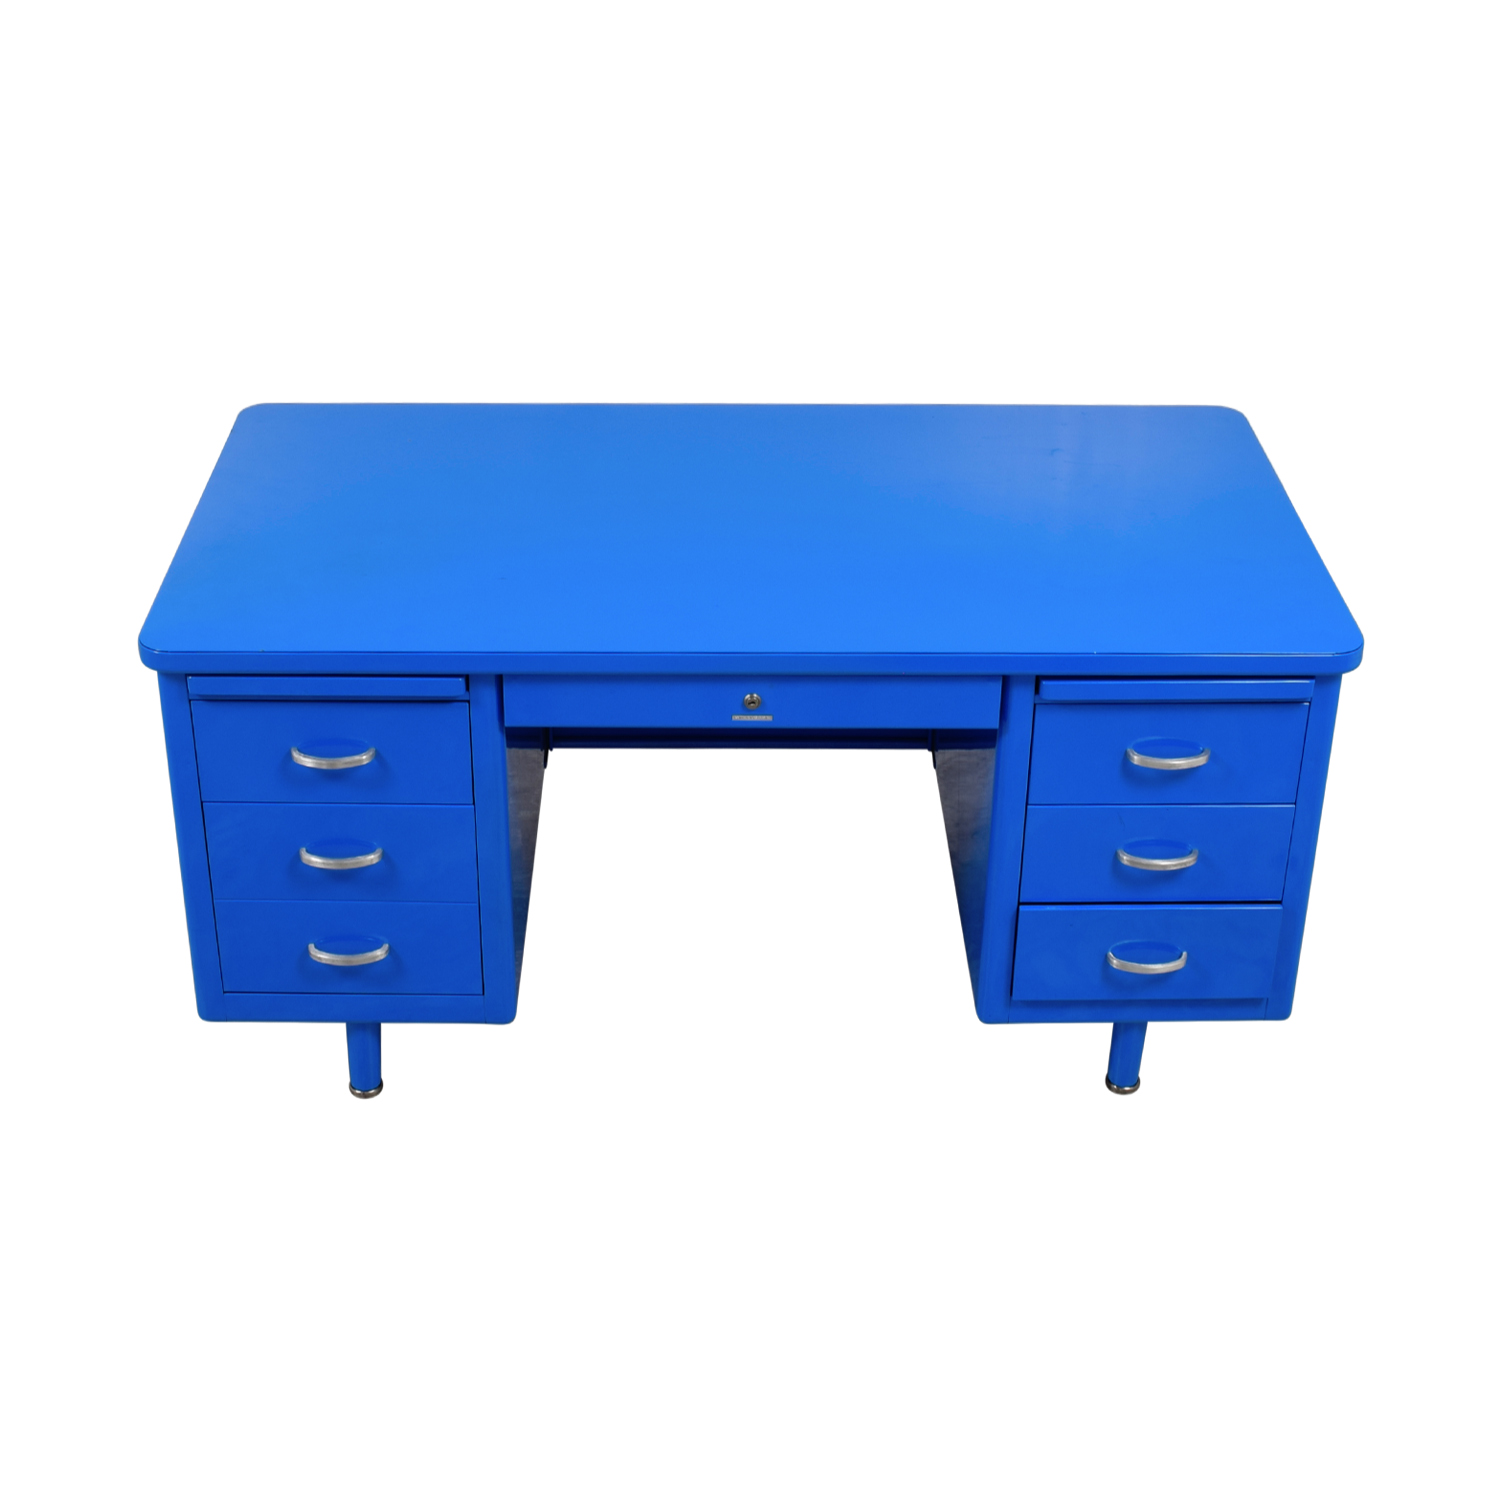 Steelcase Steelcase Refinished Vintage Blue Tanker Desk for sale